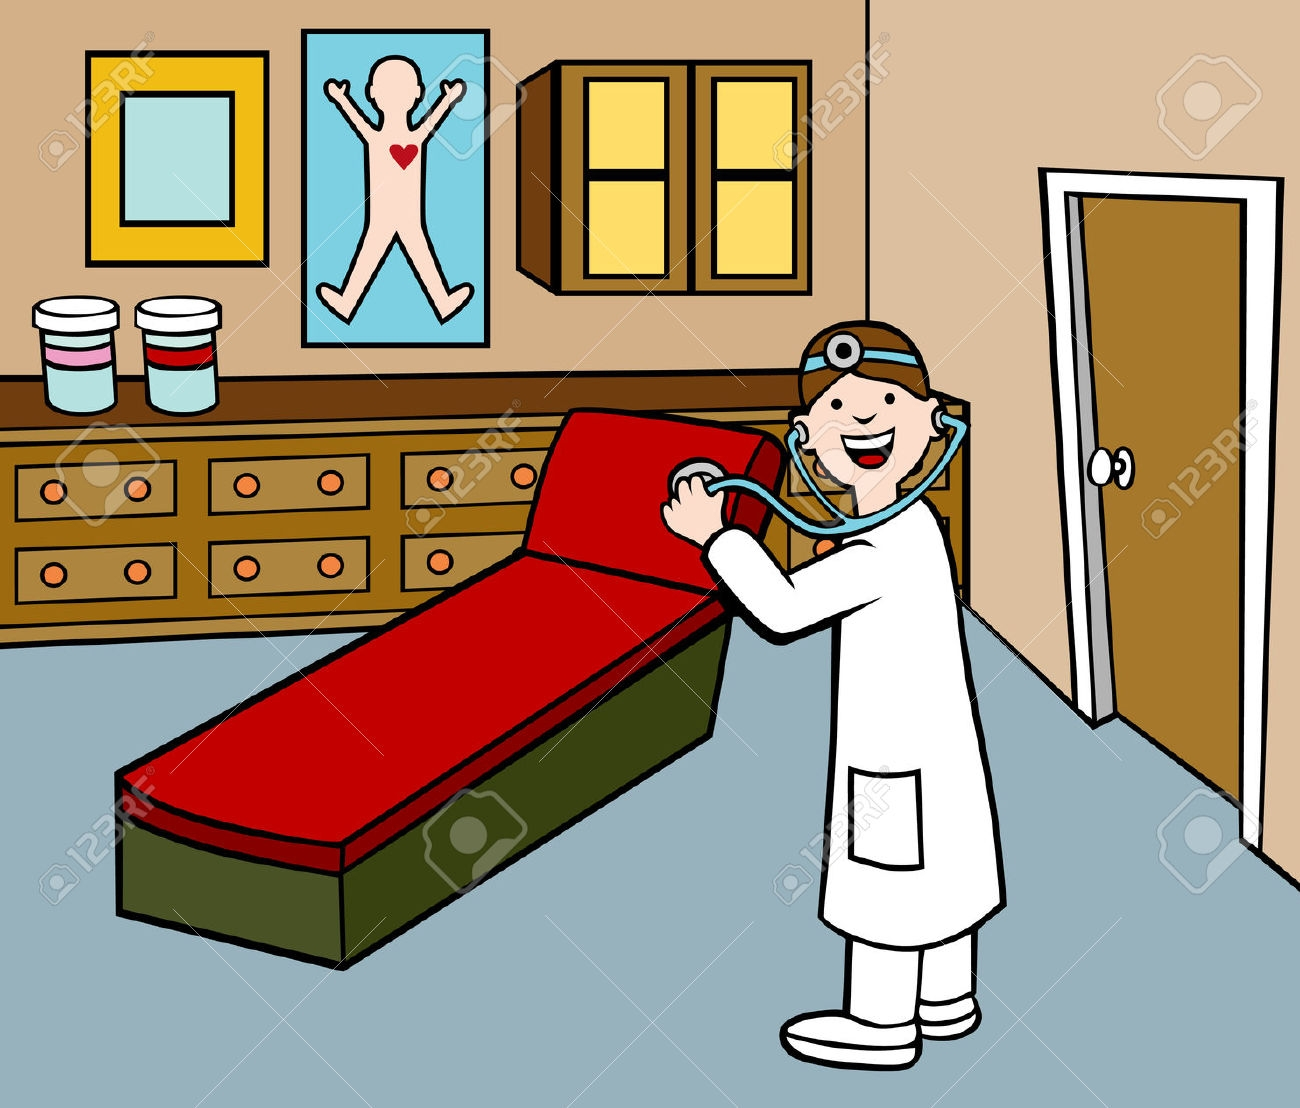 Doctor's office clipart - Clipground